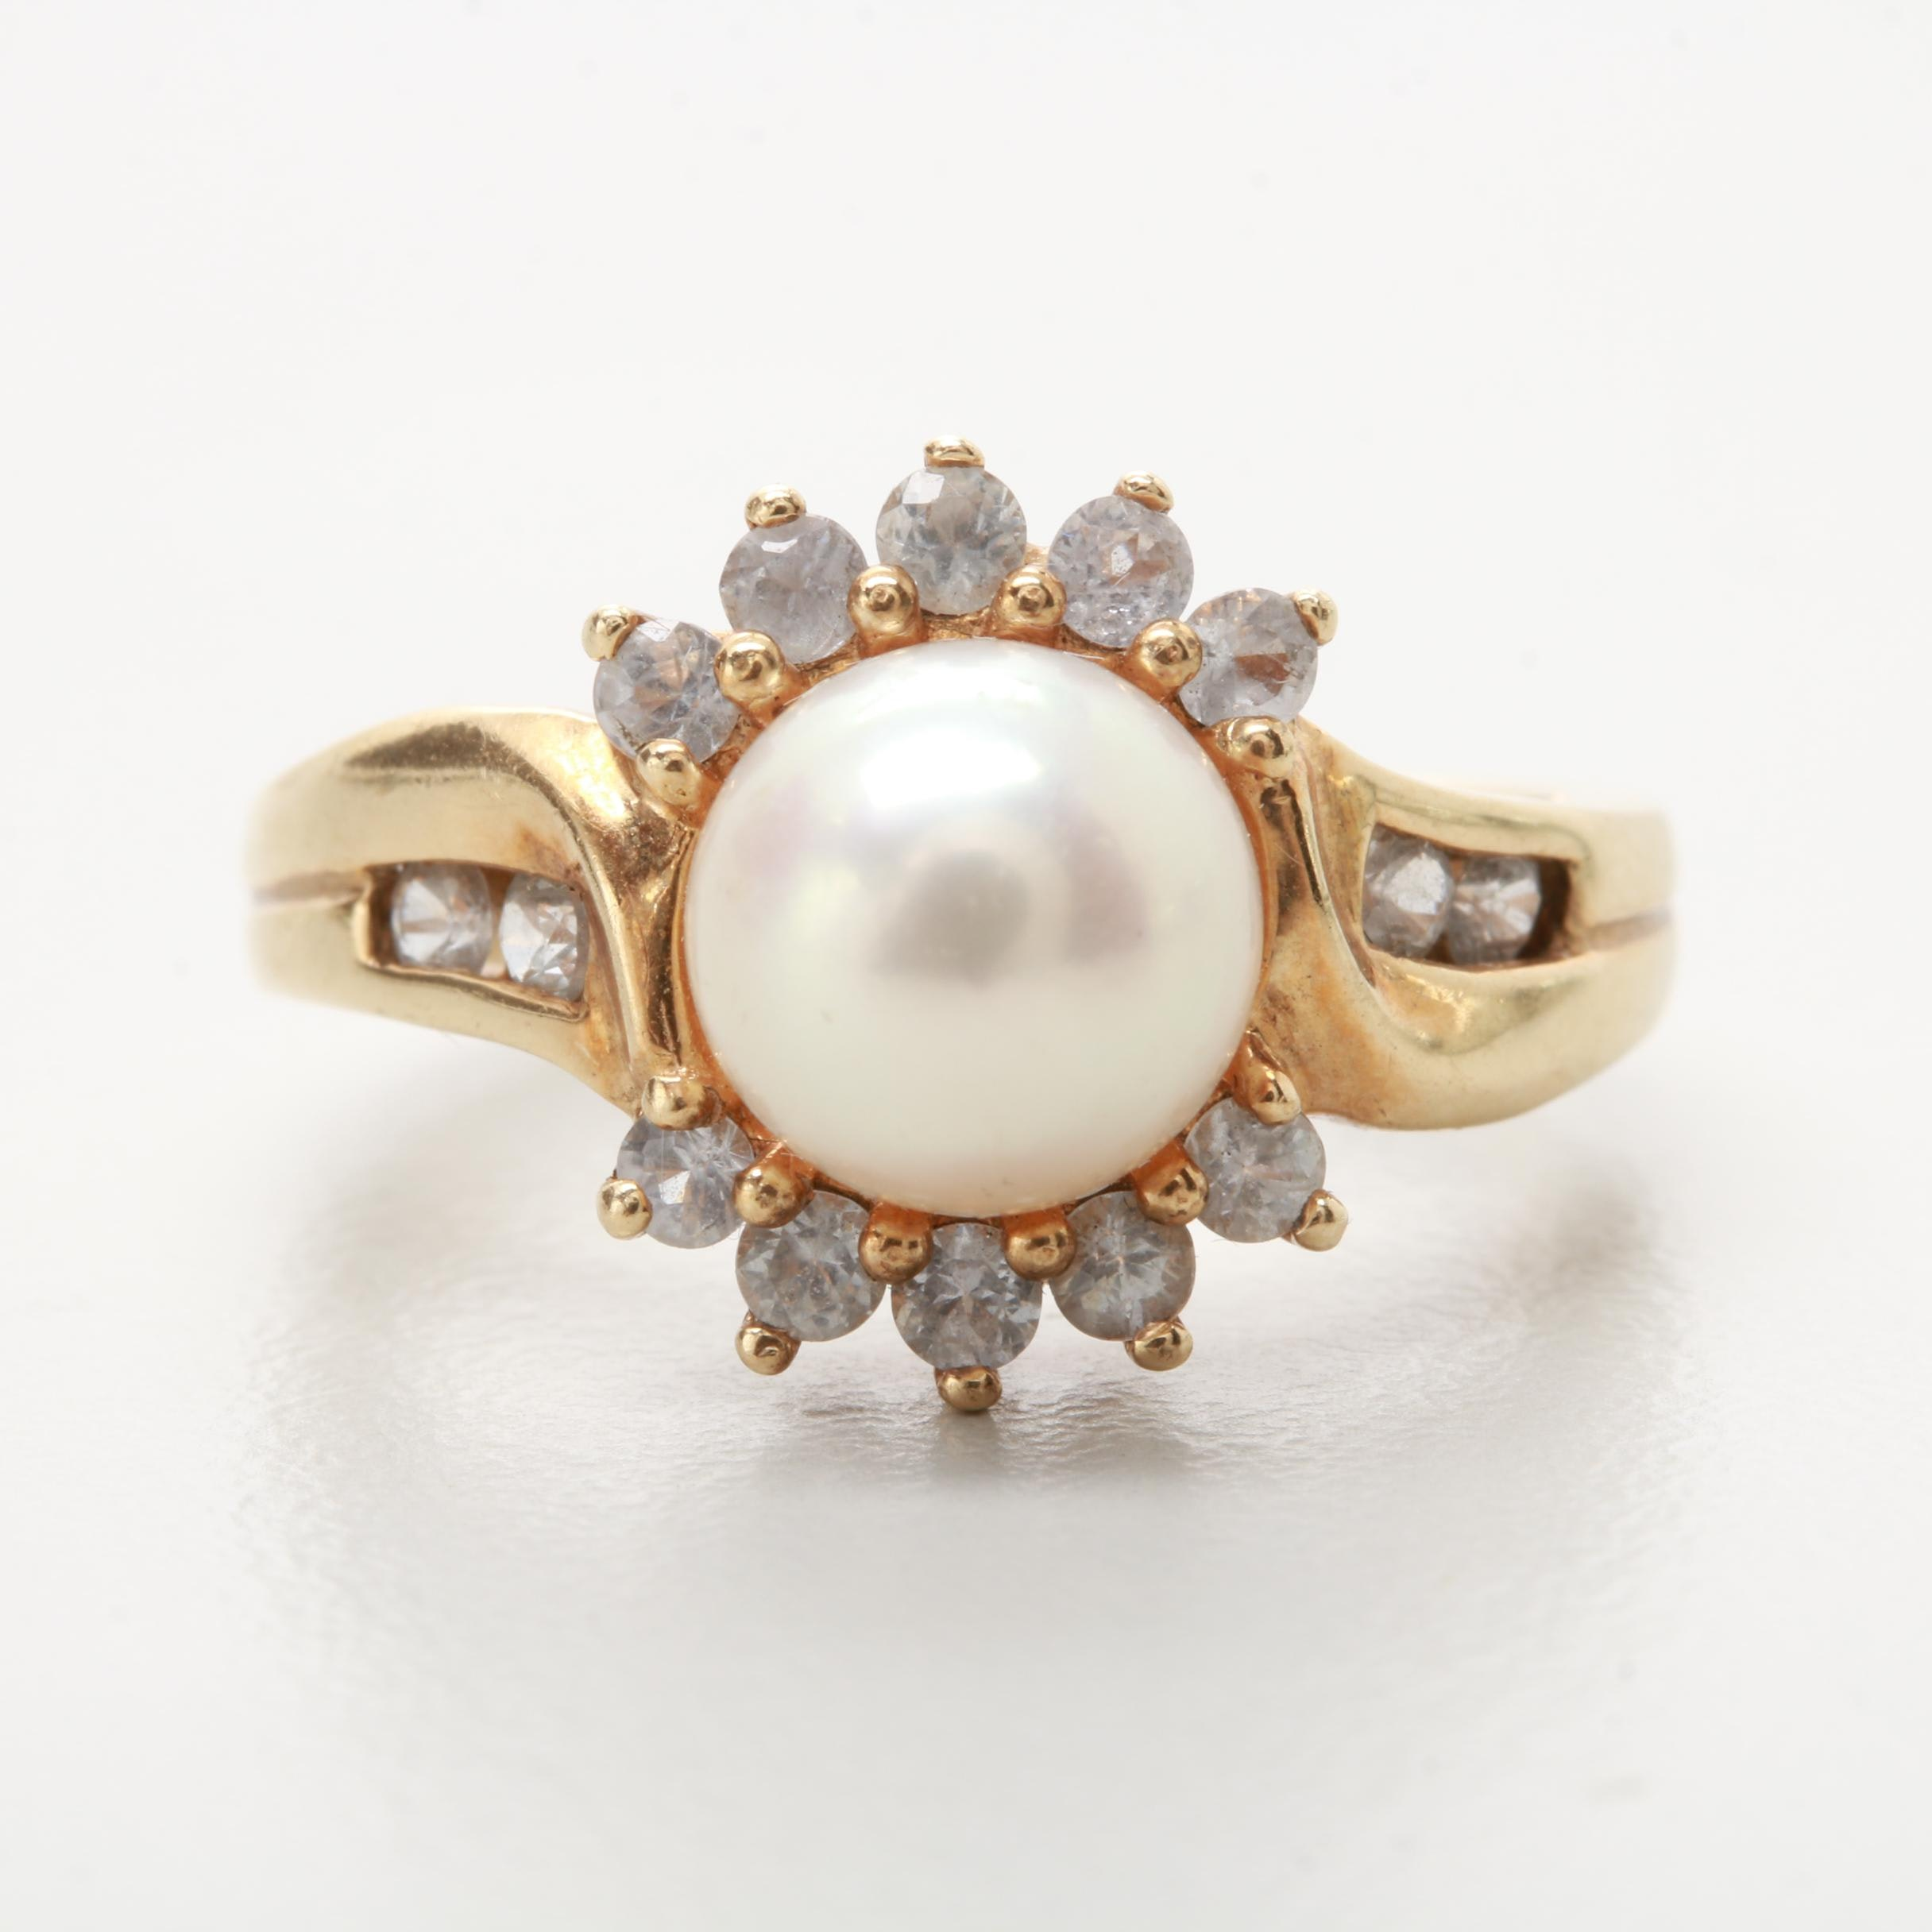 10K Yellow Gold Cultured Pearl and White Sapphire Ring